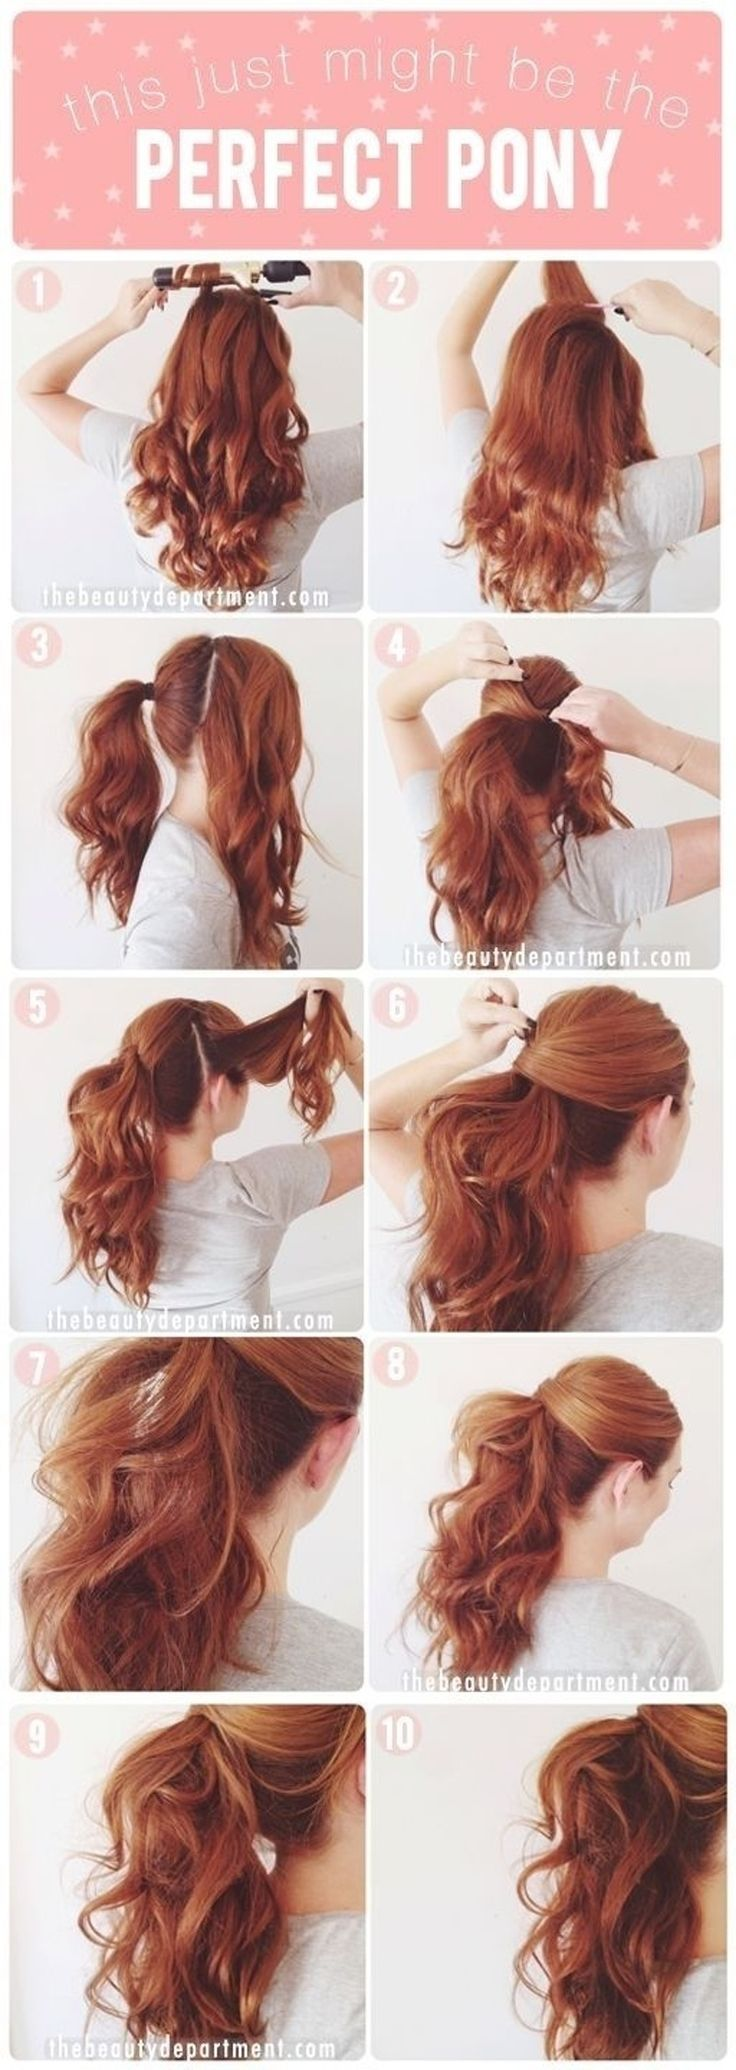 Haircut for small face men  best images about hair on pinterest  menus hairstyle men curly